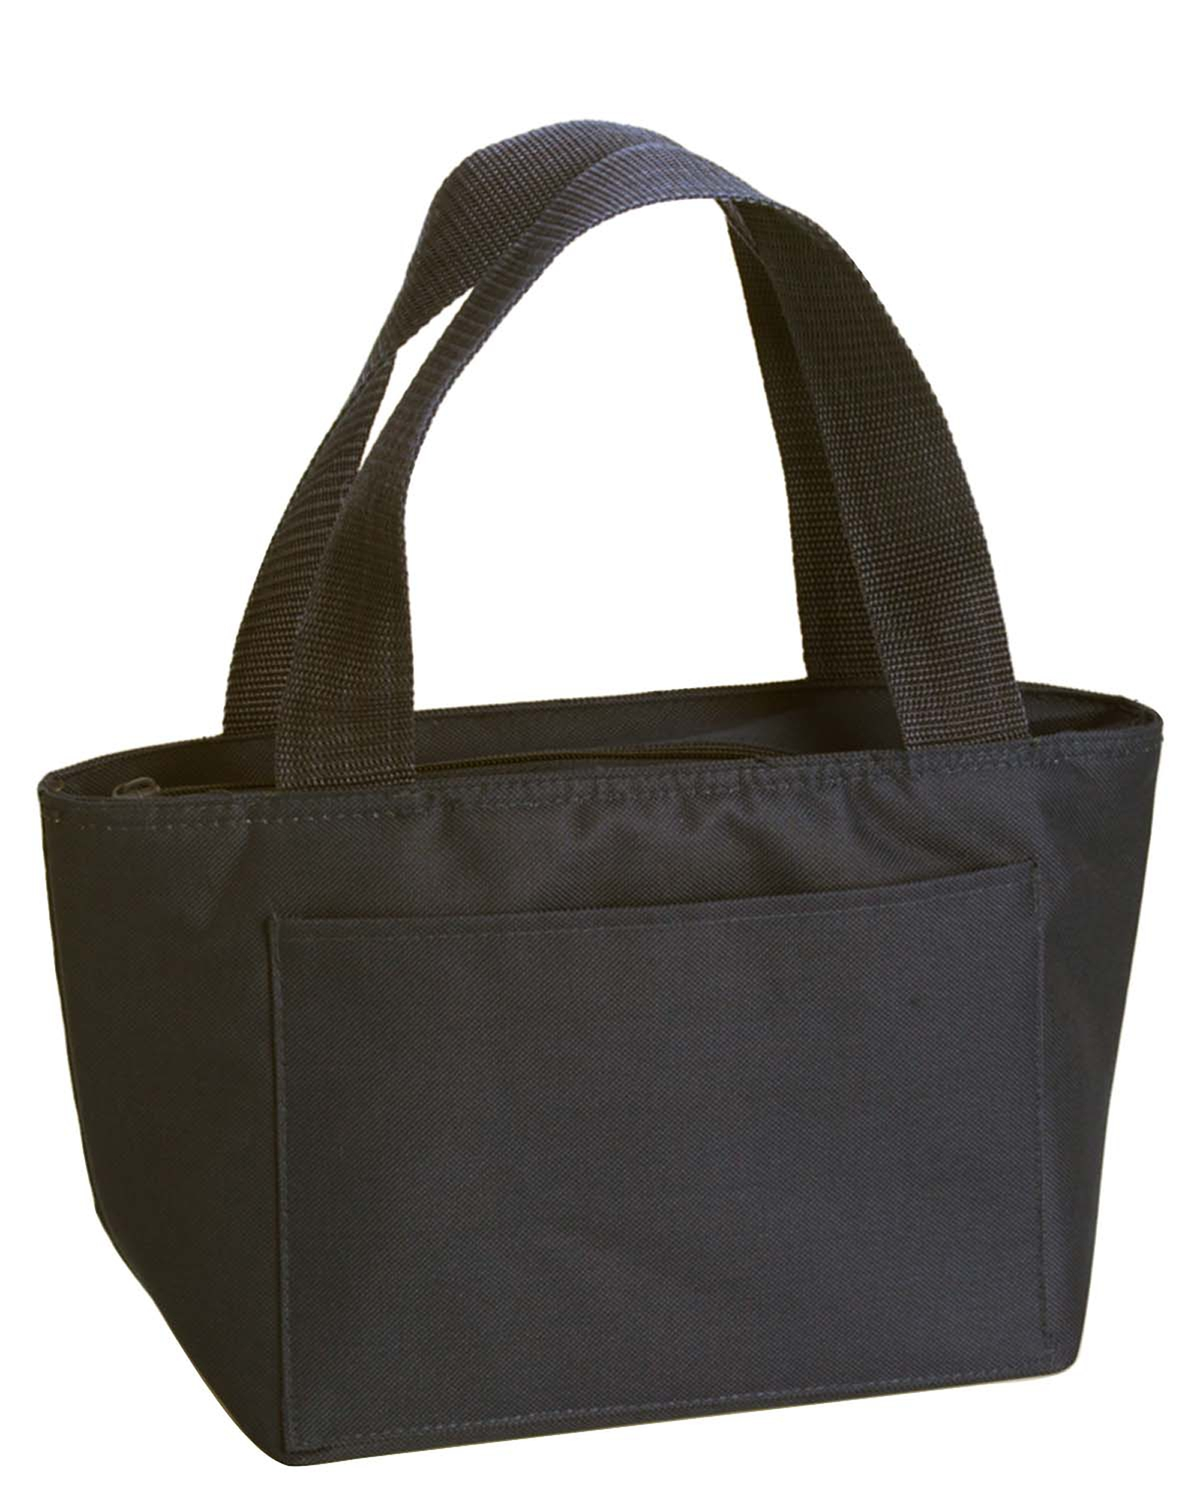 Liberty Bags 8808 - Recycled Cooler Tote